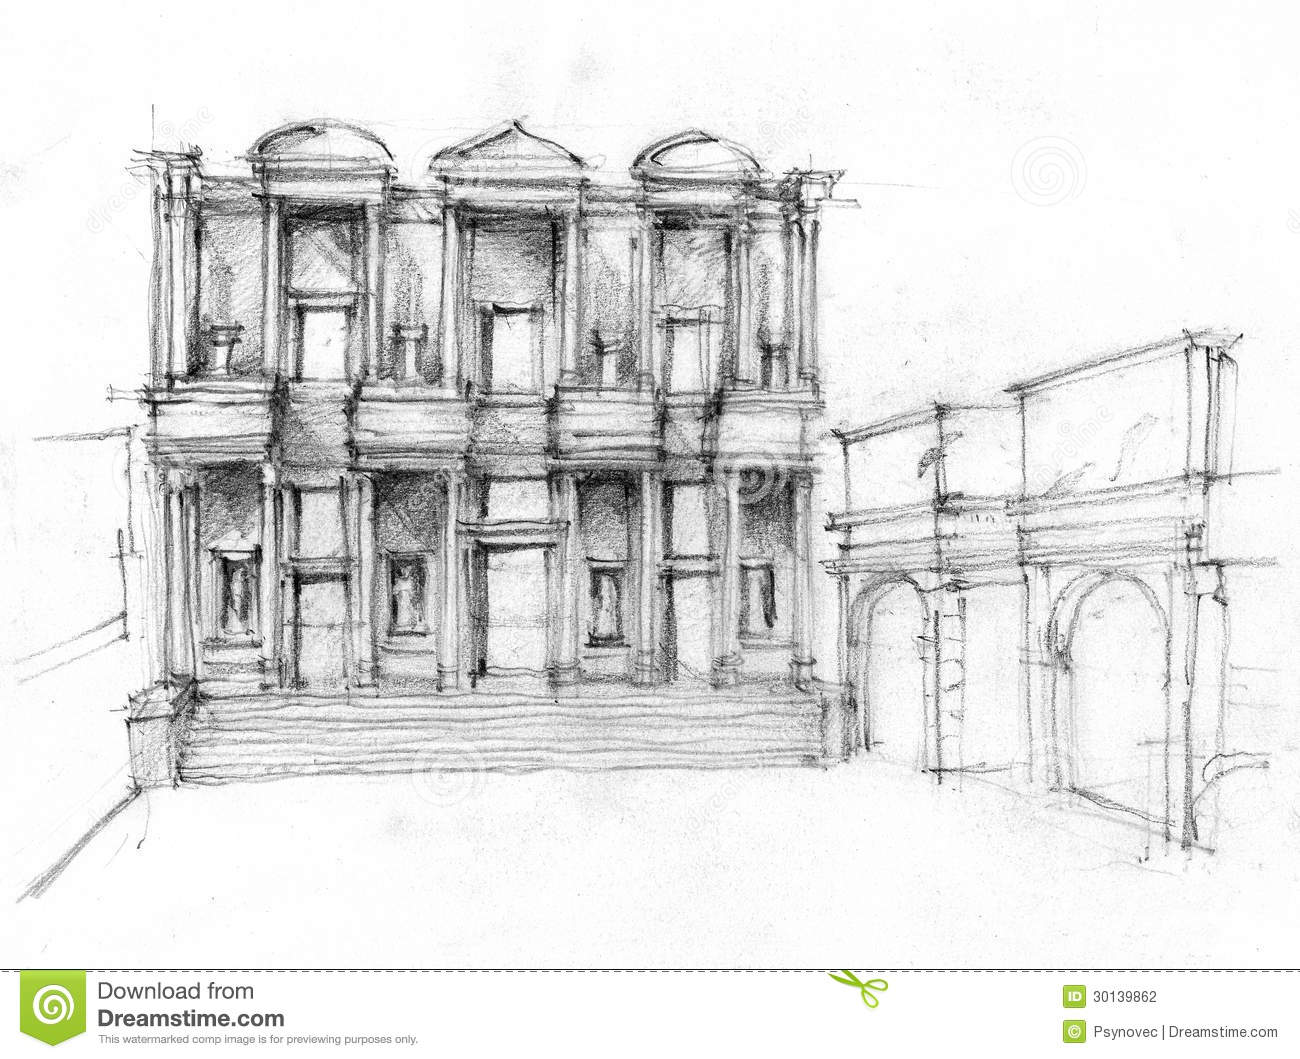 Stock Photo Modern Industrial Building Loading Doors Blue Sky Units Image54797636 in addition 14193 also Stock Photography Illustration Library Celsus Ephesus Turkey Ruin Monumental Facade Historic Building Hand Pencil Sketch Image30139862 in addition Royalty Free Stock Images Modern Residential Buildings Ashdod Israel  plex Contemporary City Image34495669 additionally Royalty Free Stock Images Modern Architecture Hong Kong Science Parks Image22492559. on modern exterior sign